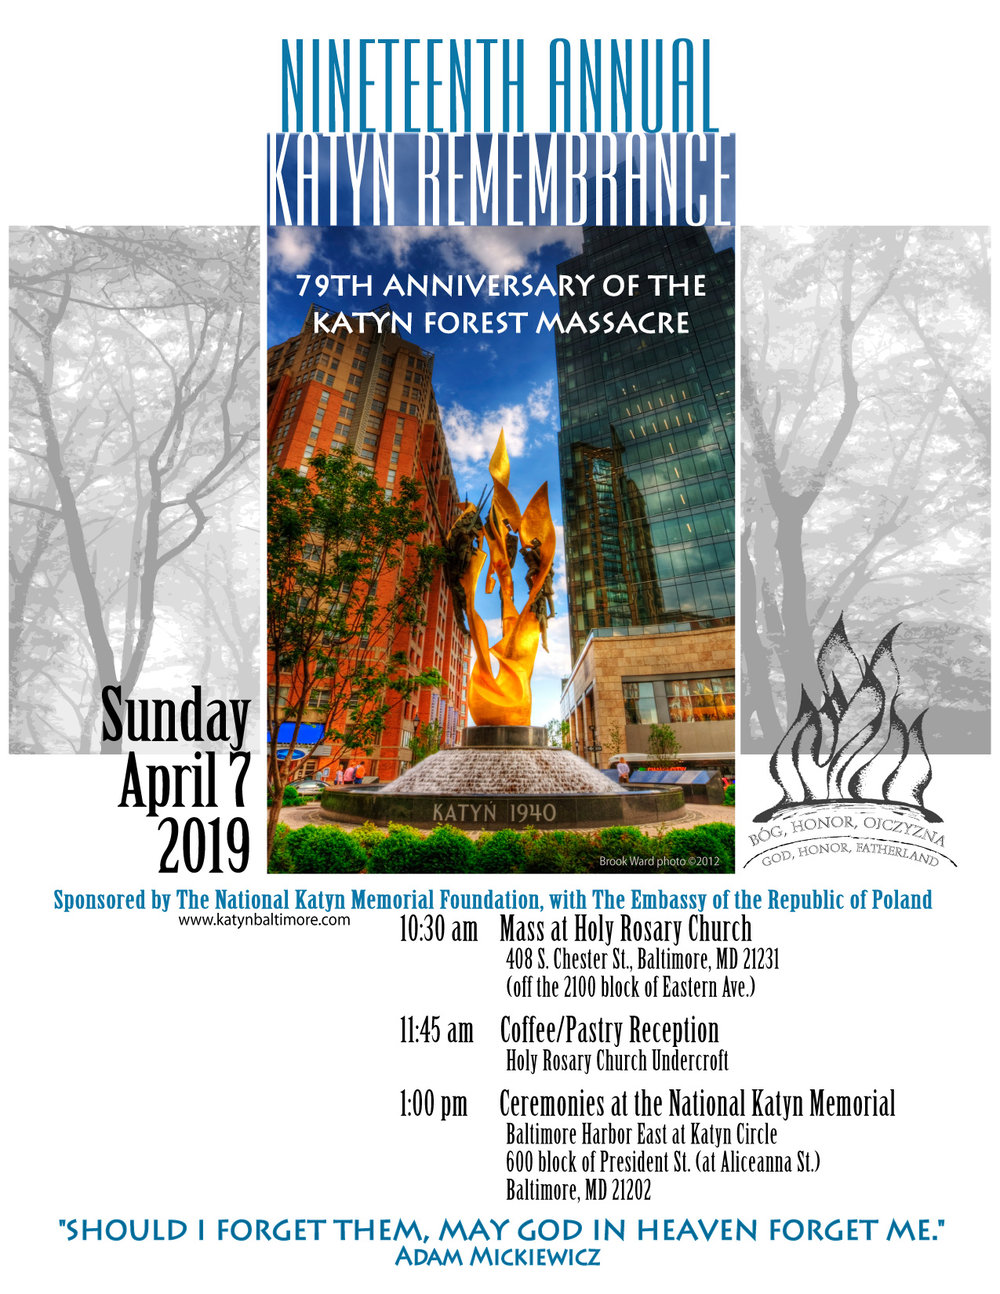 Nineteenth Annual Katyń Remembrance in Baltimore, MD